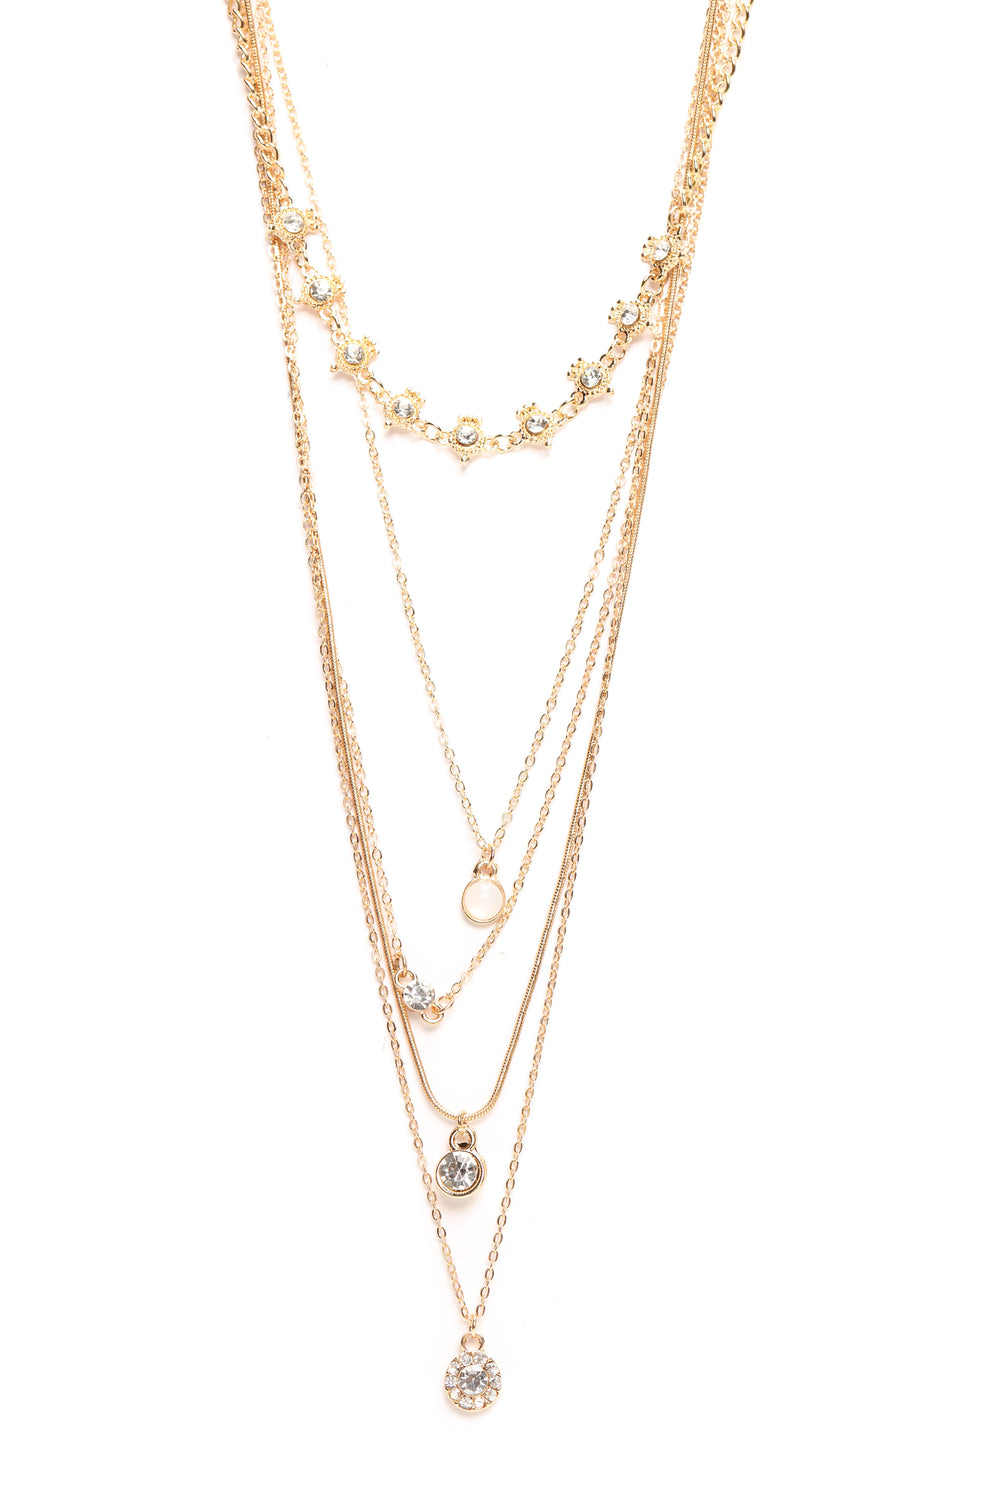 Jaydee Layered Necklace - Gold